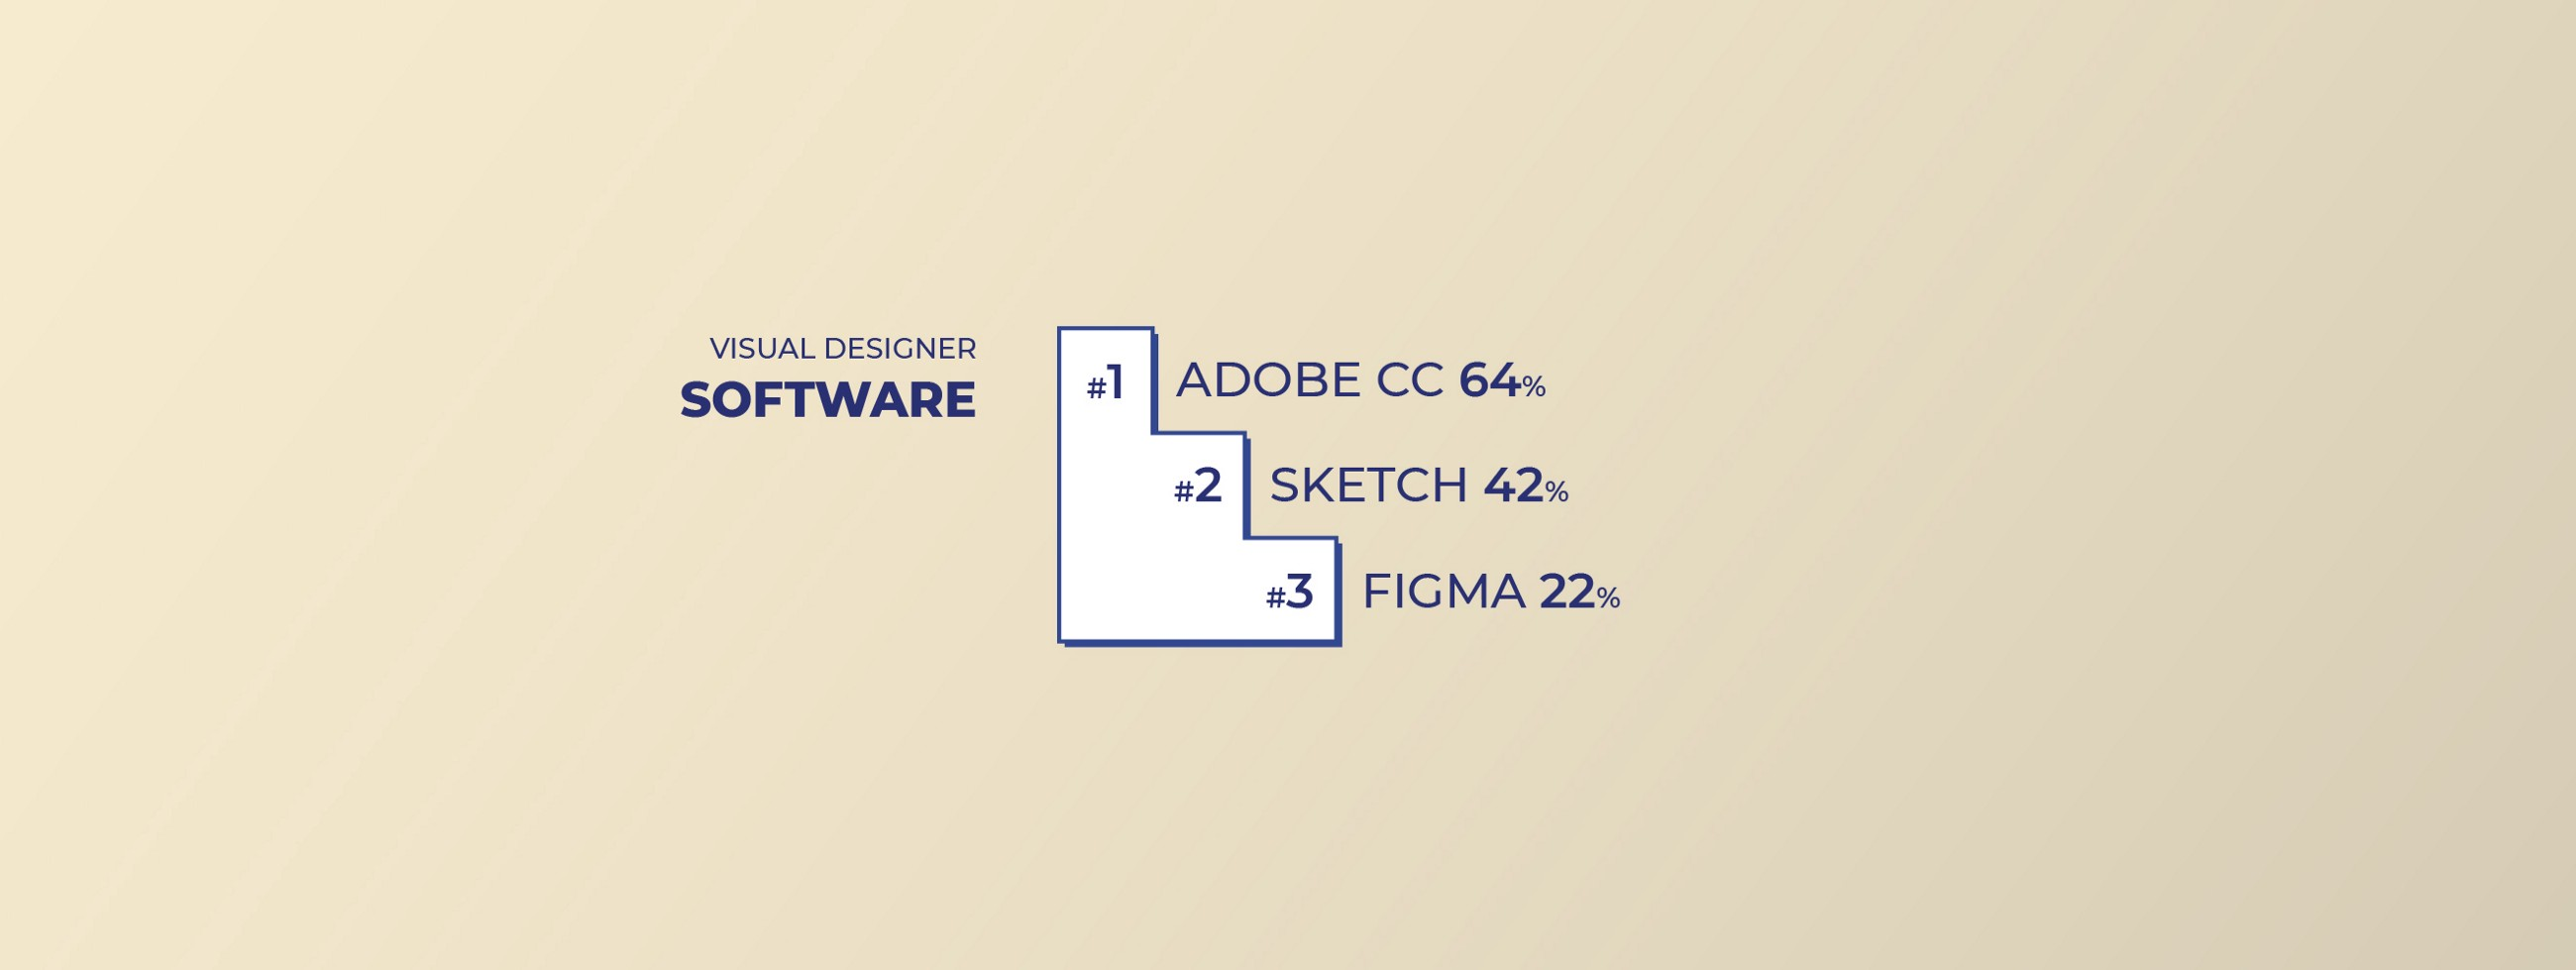 Top 3 Software for Visual Designers: #1 Adobe CC, #2 Sketch and #3 Figma